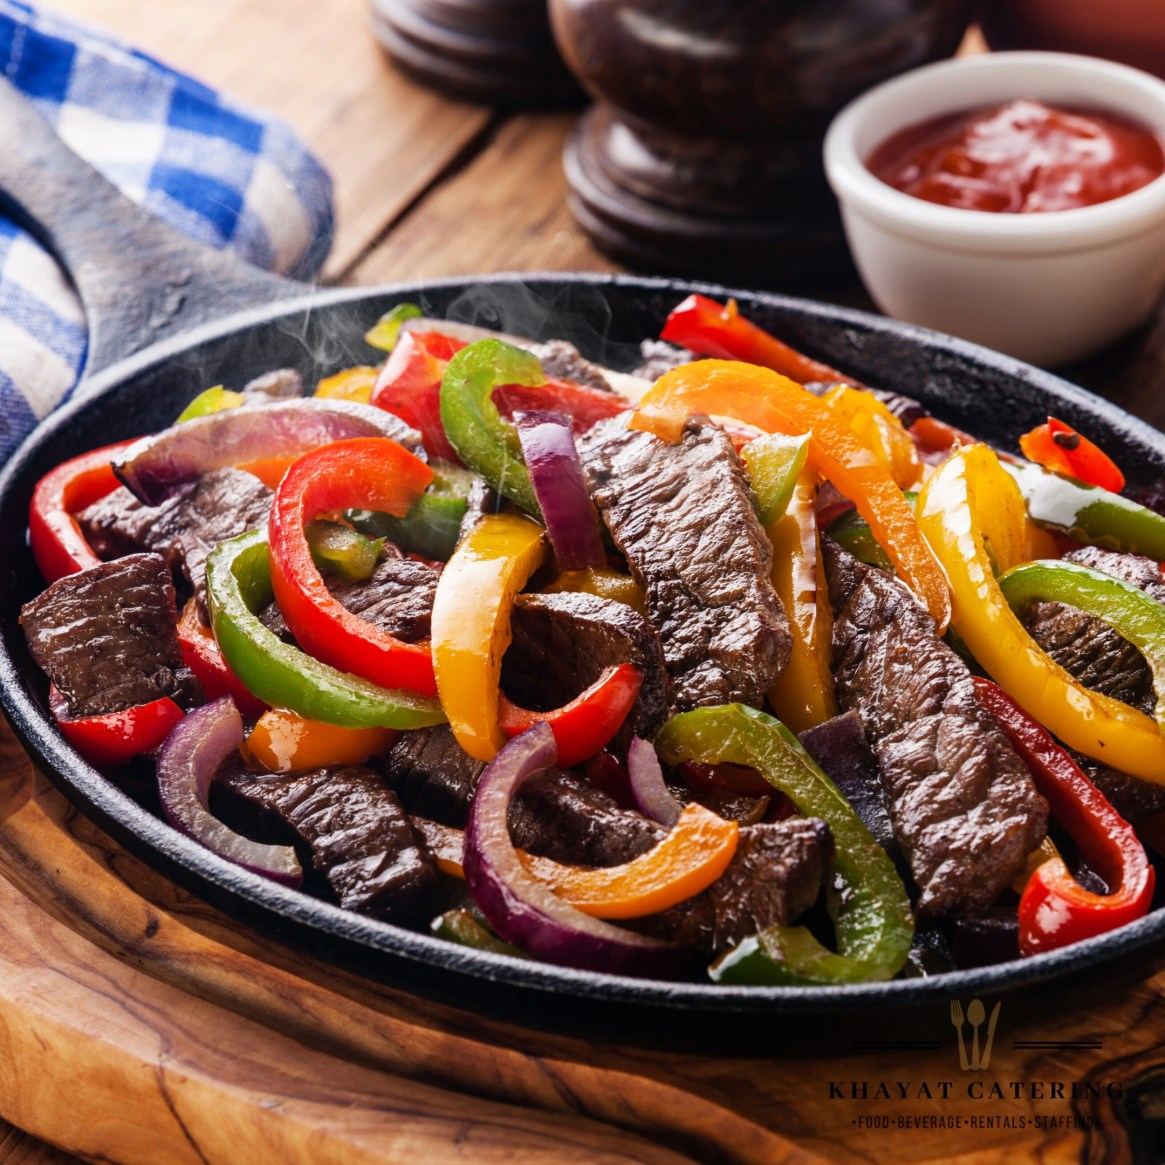 Khayat Catering steak fajitas